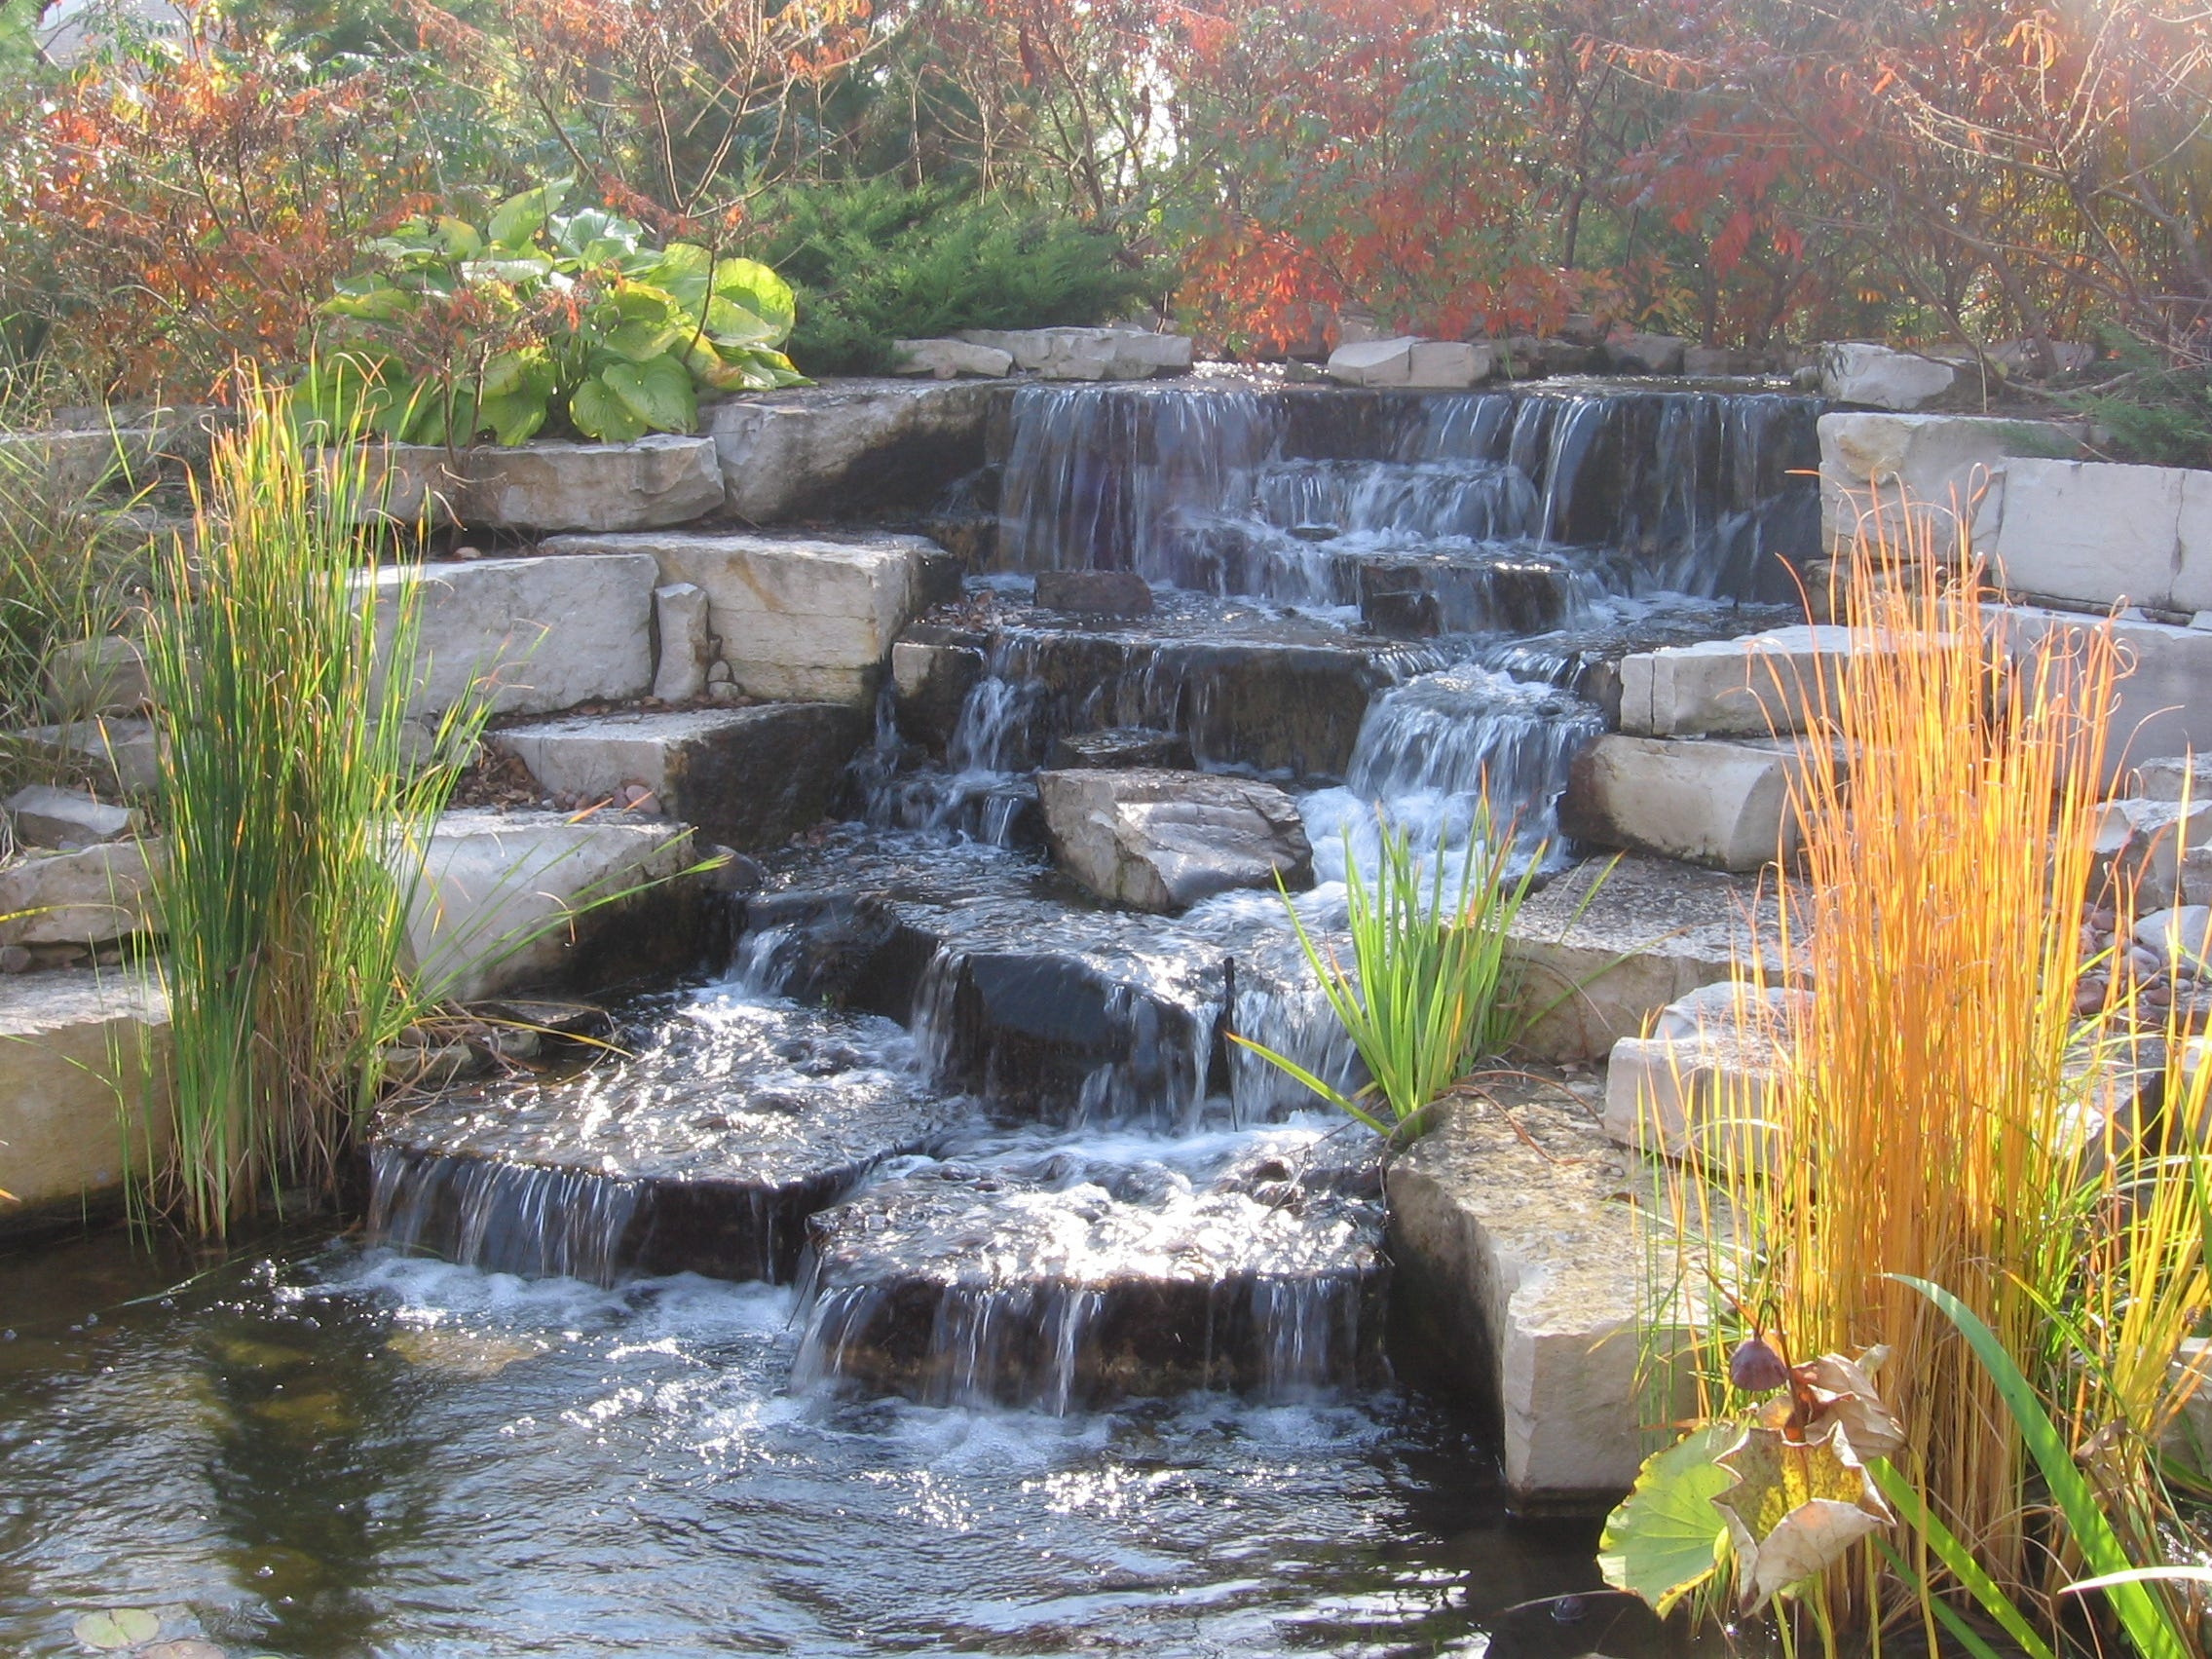 This waterfall has a grade change of about 5 feet and has waterfalls that are about 6 feet wide and flow into a 15-by-30-foot pond. The water feature was built using Lannon stone.